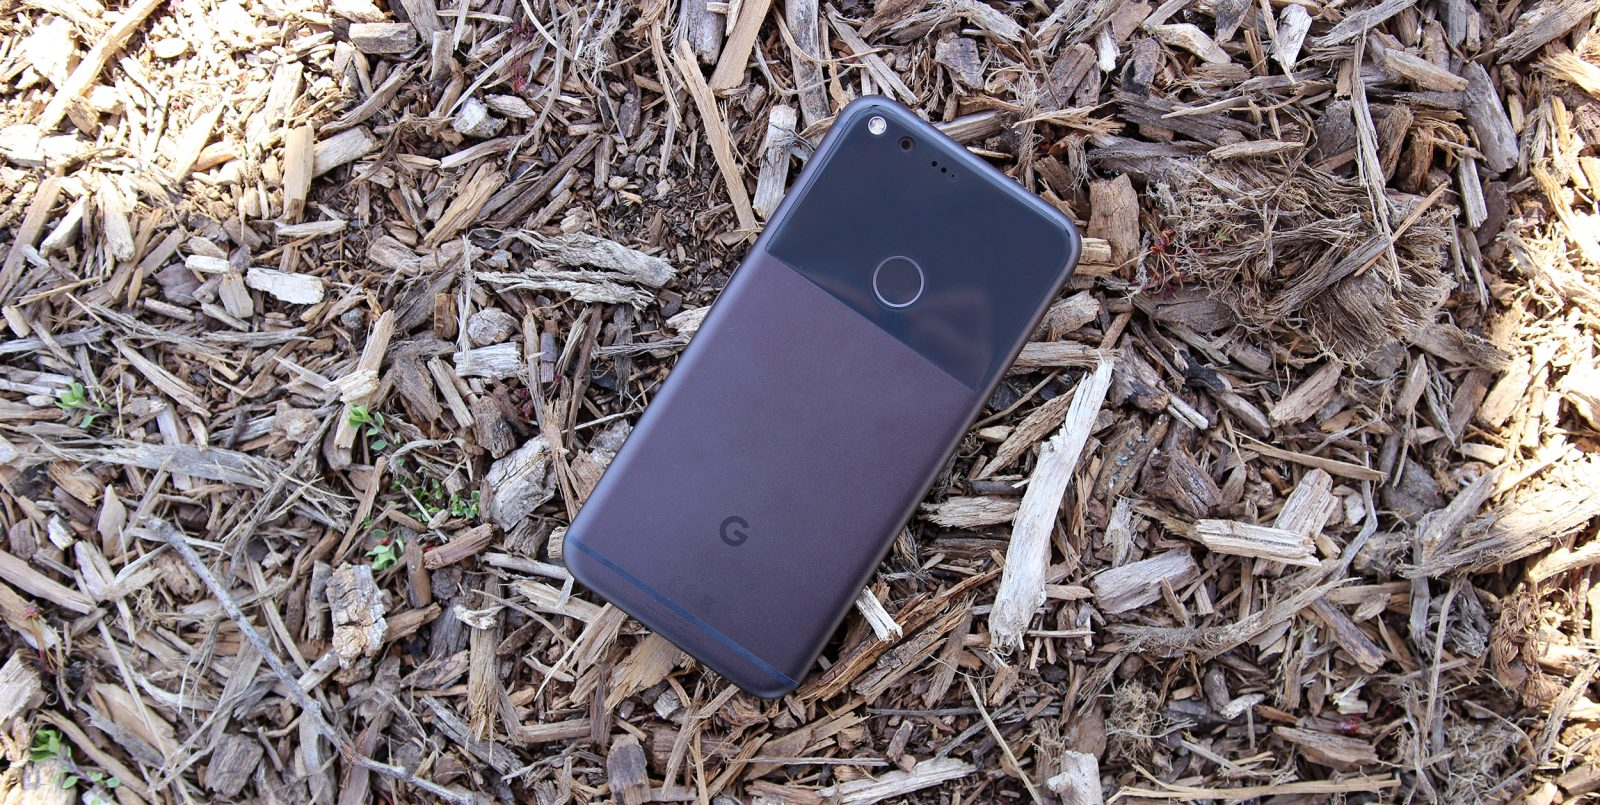 Google outlines when Pixel and Nexus devices will stop